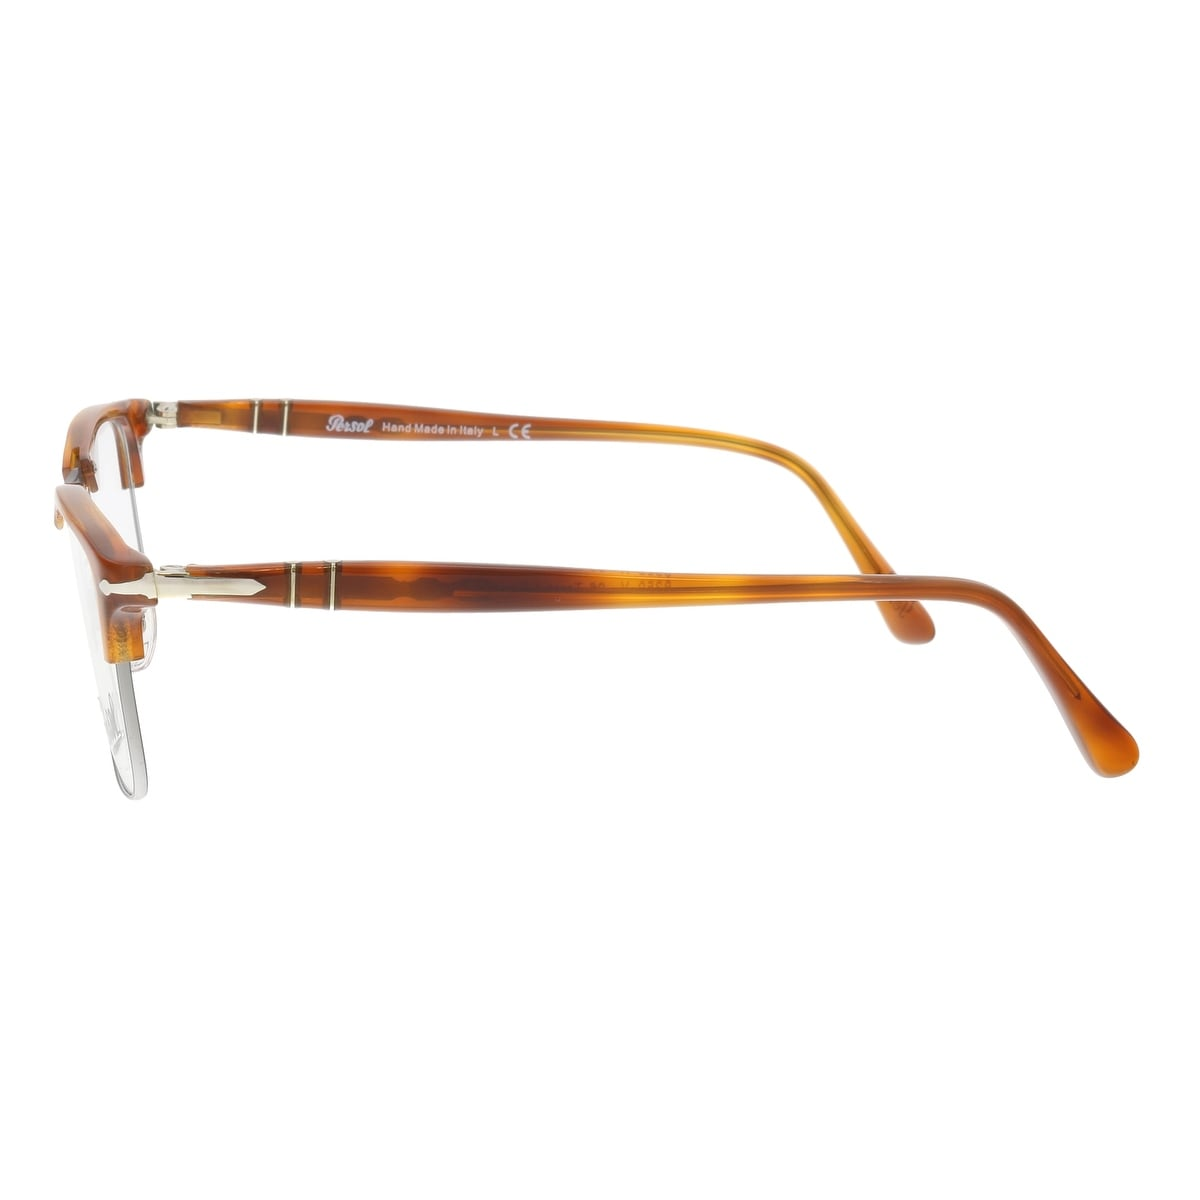 c8bca42c64 Shop Persol PO8359V 96 Terra di Siena Amber Silver Square Optical Frames -  51-19-145 - On Sale - Free Shipping Today - Overstock - 19881343